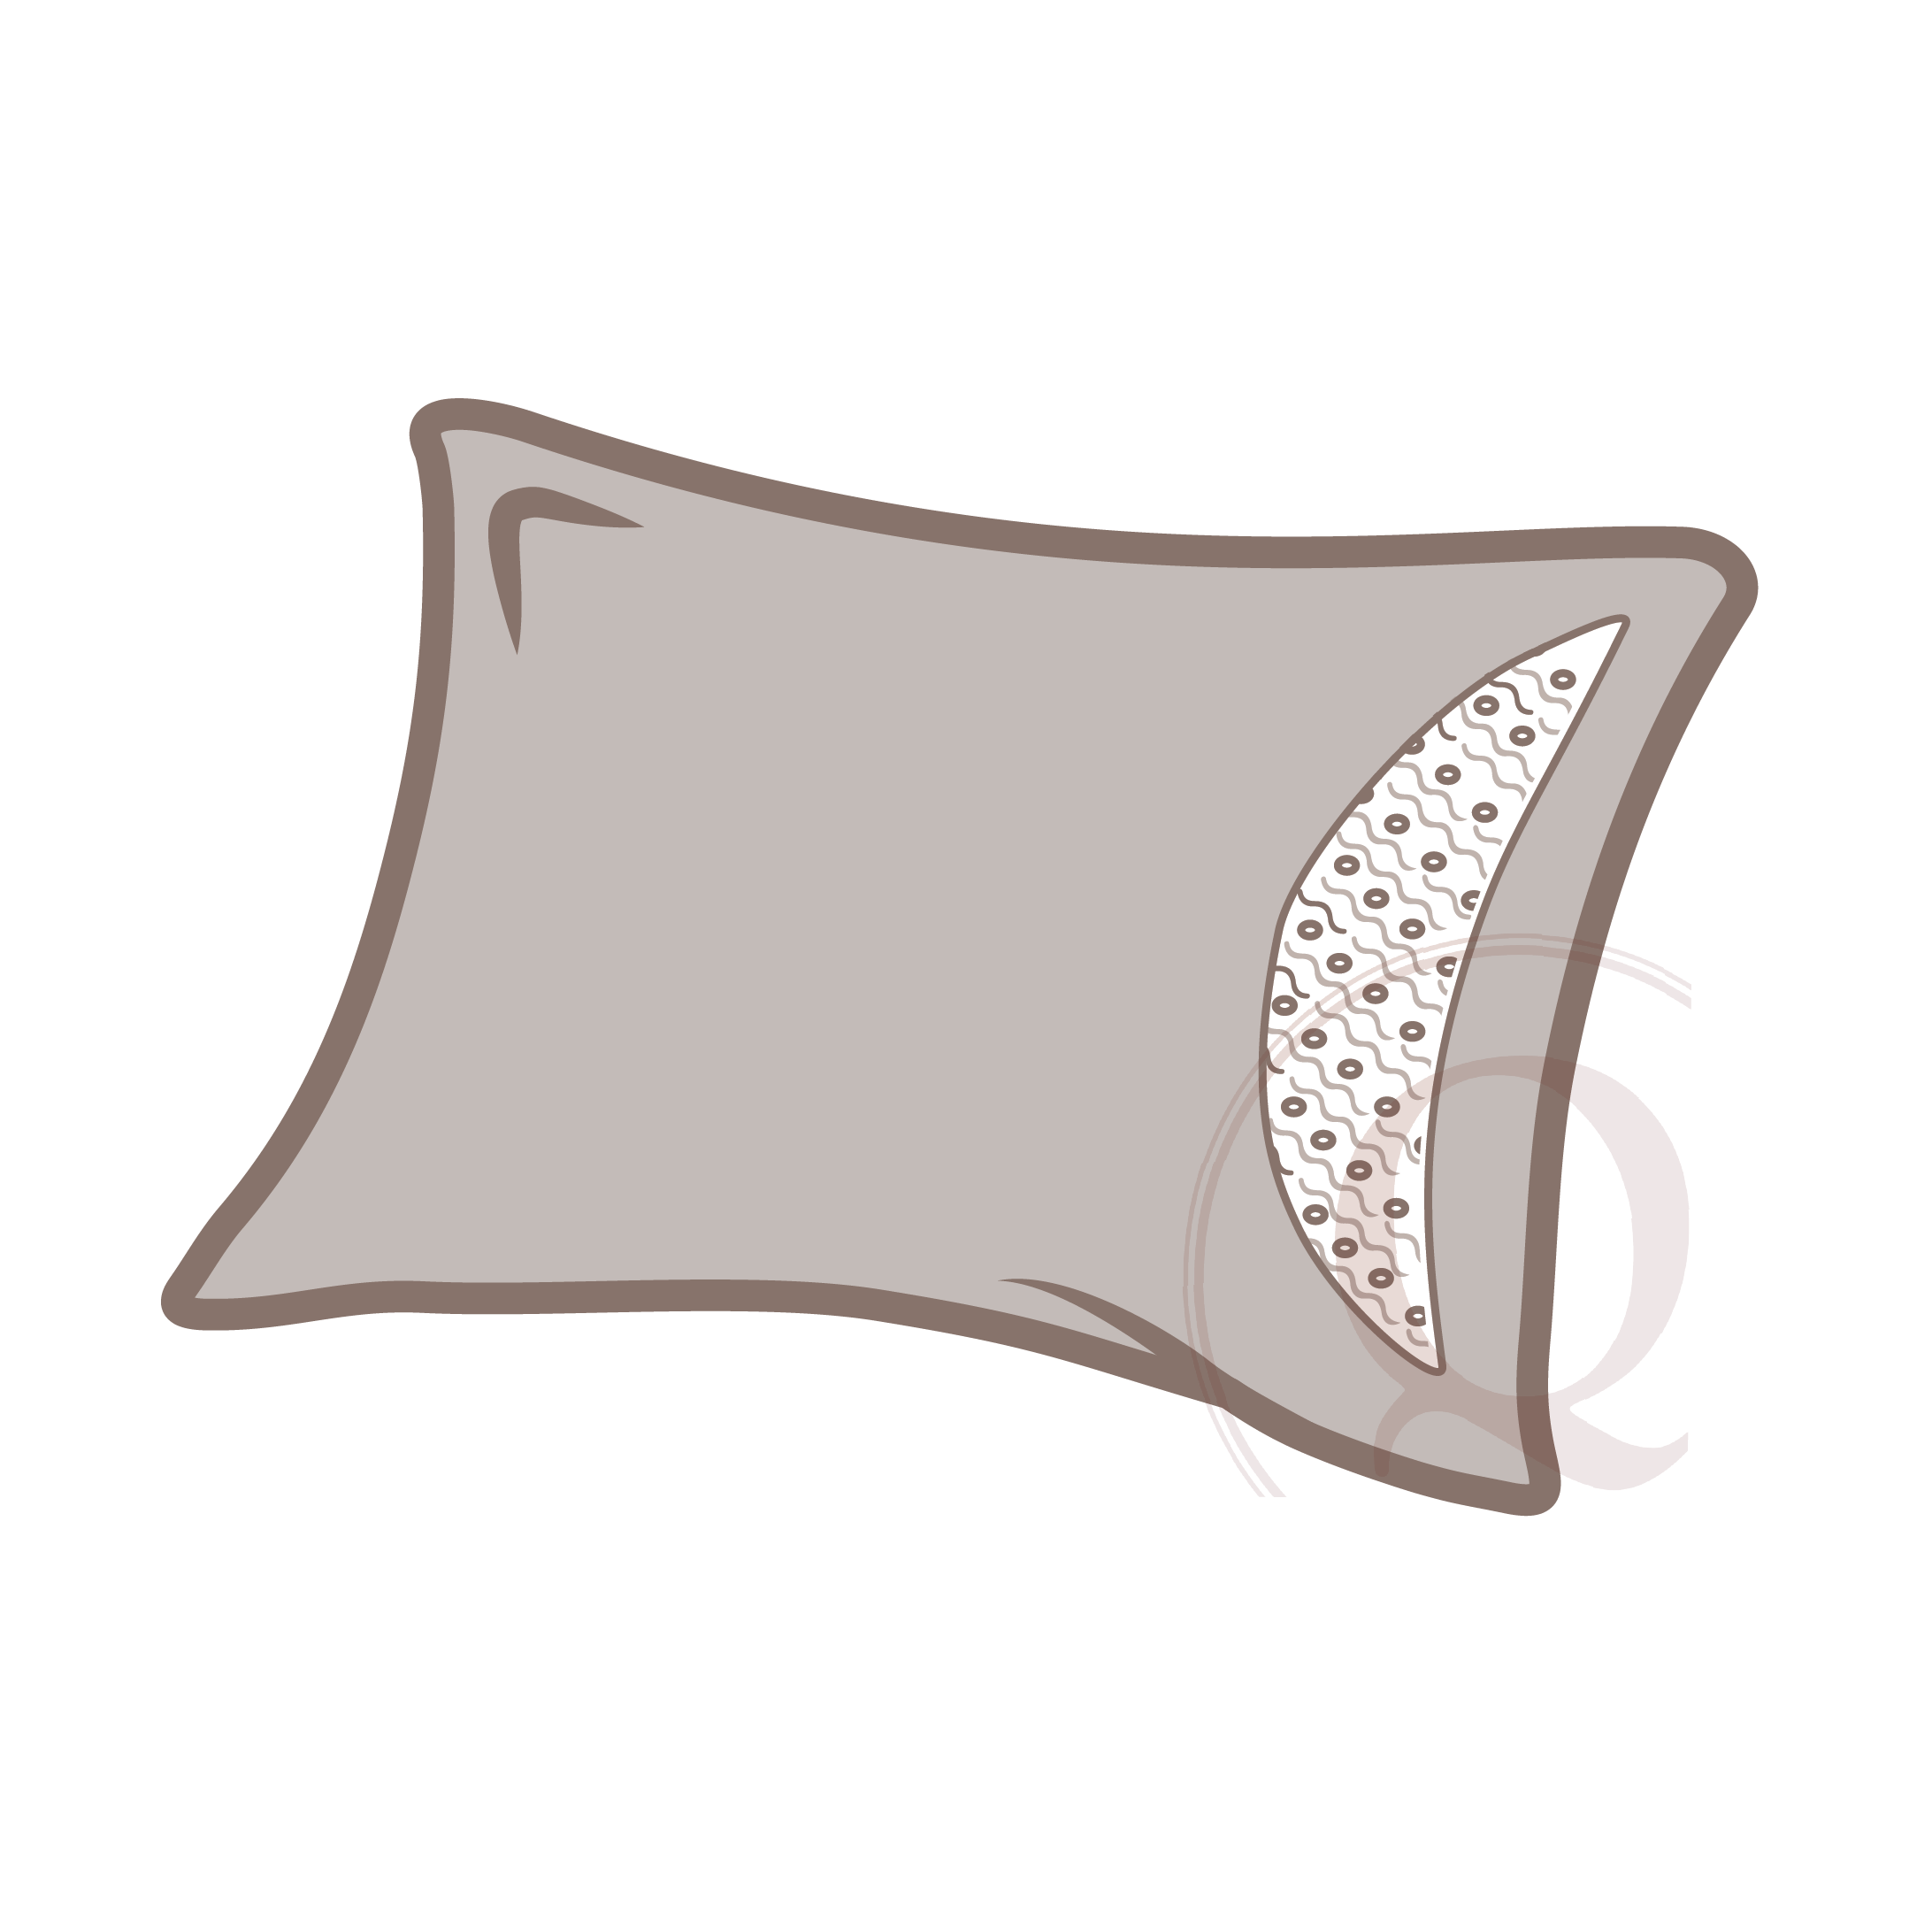 insert - Inserts are either dacron wrapped foam or a natural/synthetic fiber filling inside a fabric case. Inserts are made separately from pillow covers with the intention that they may be removed in order to clean and.or replace when needed.